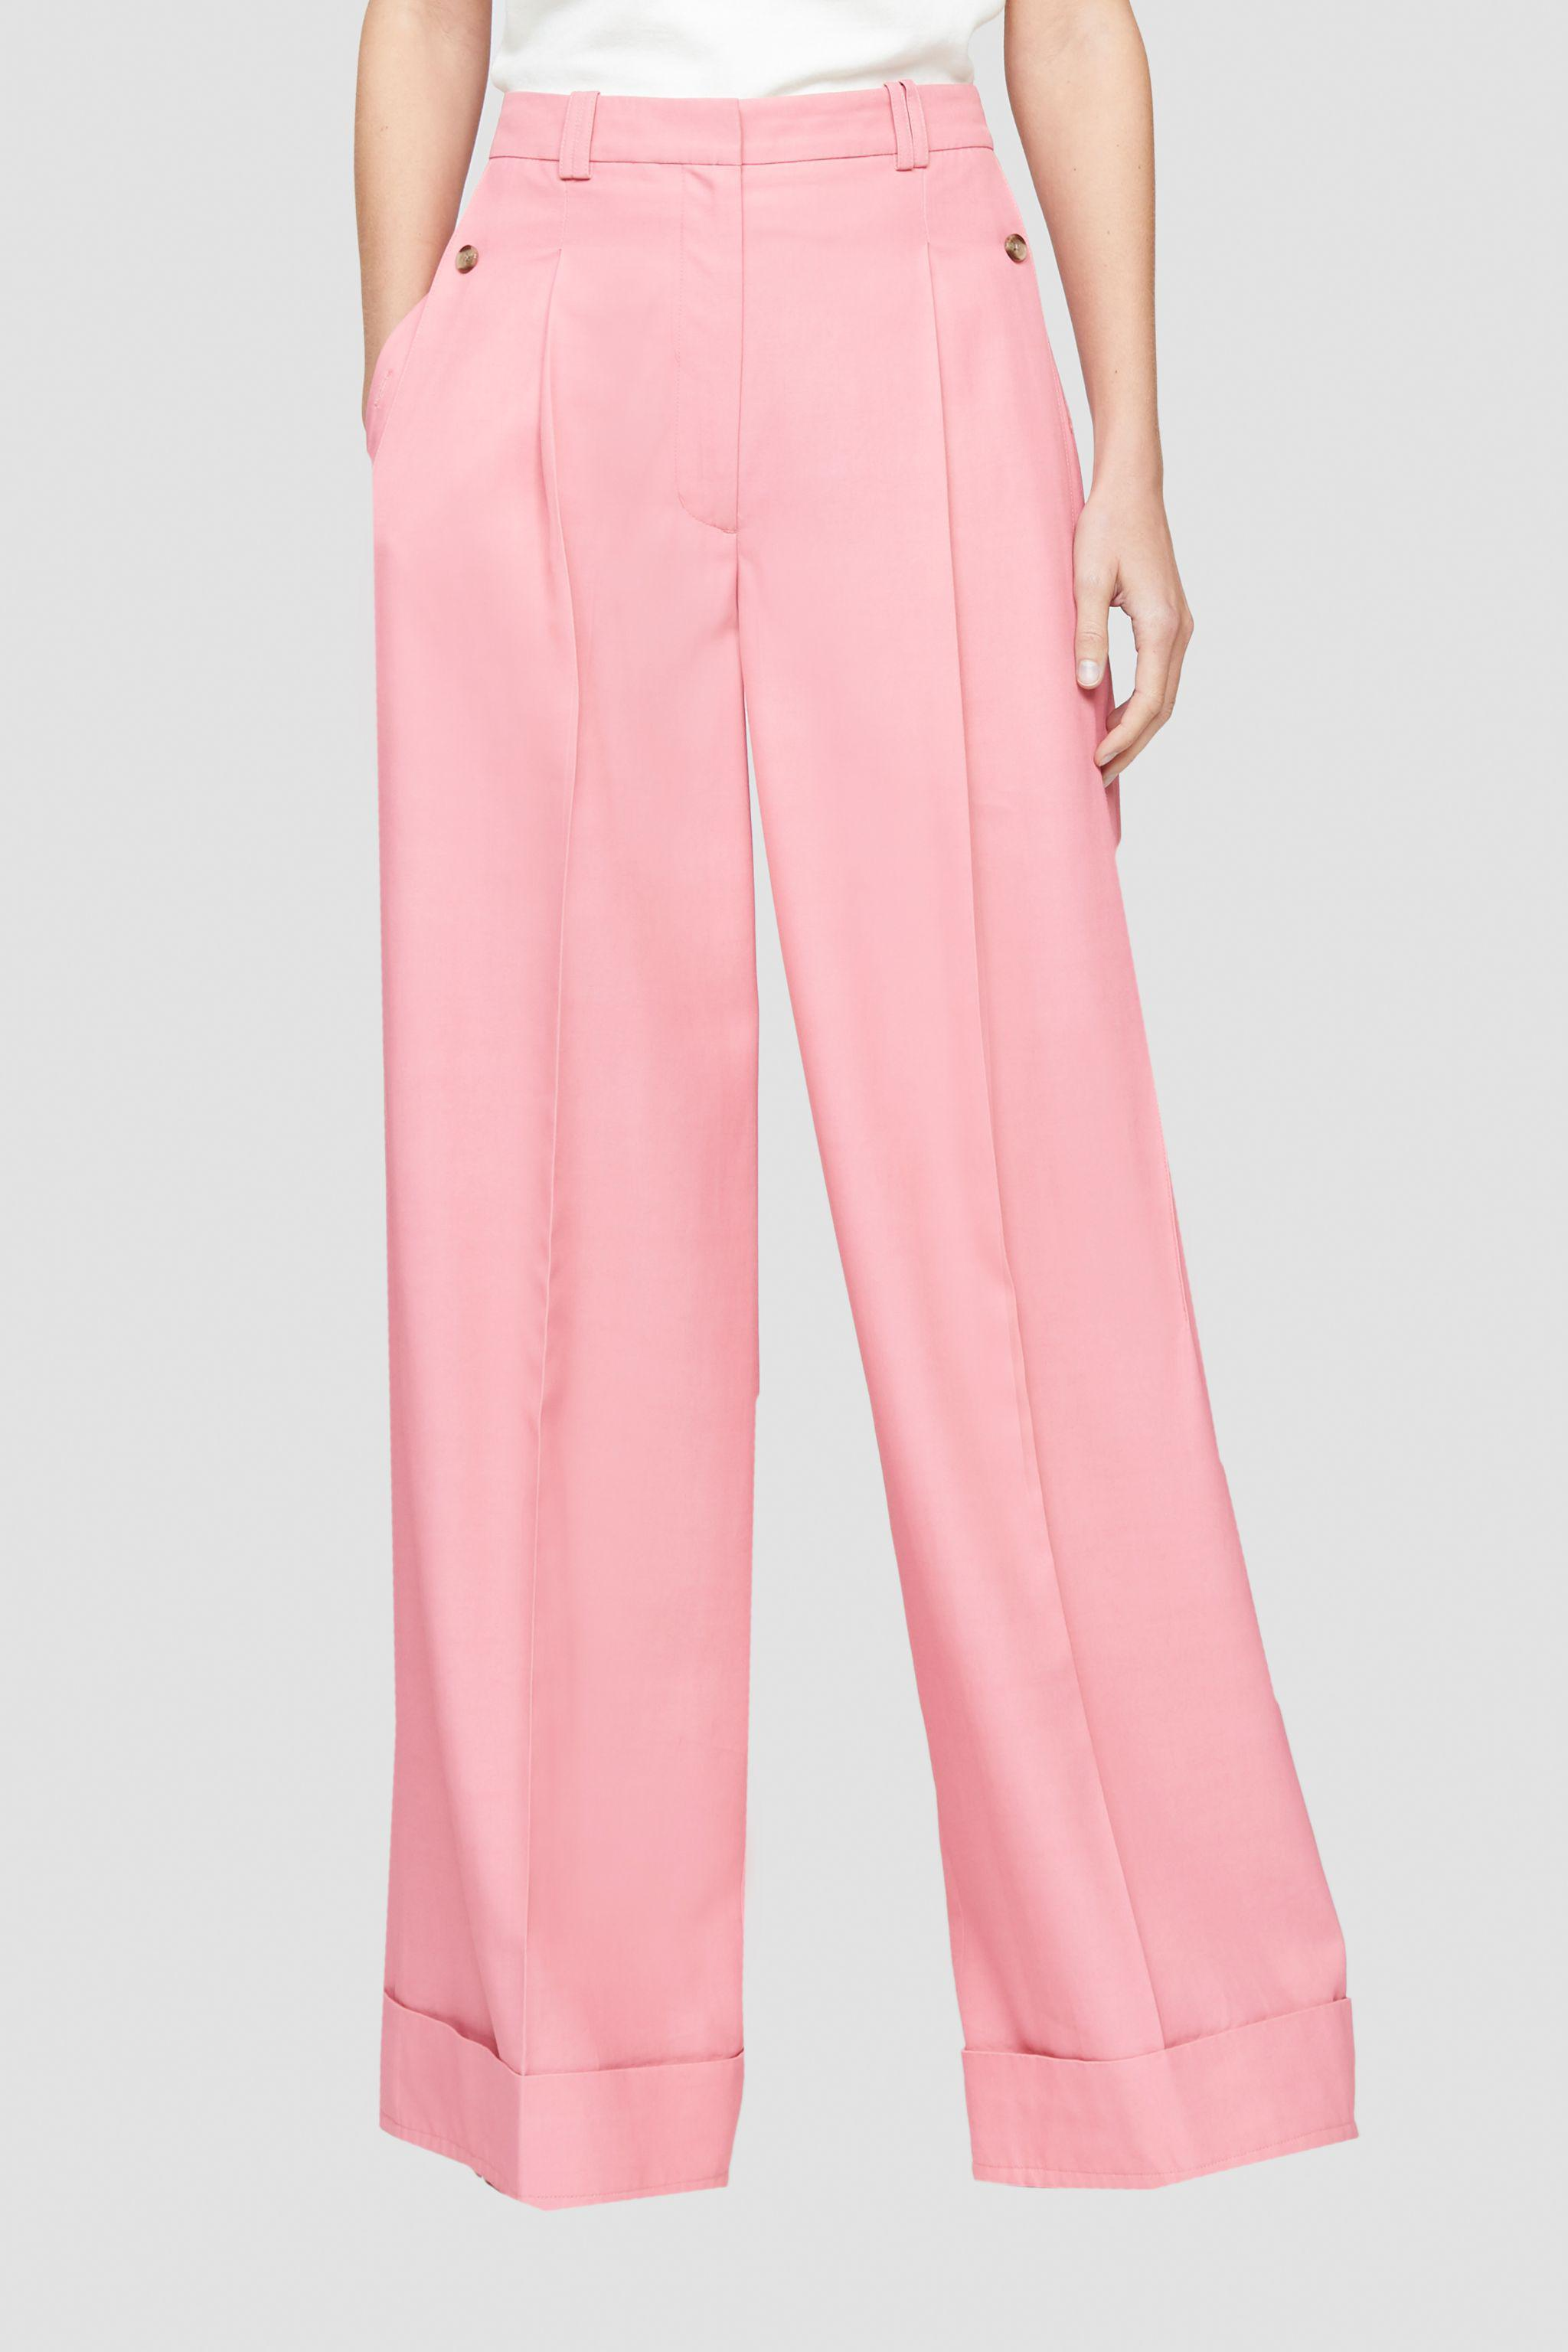 Flou pressed-crease palazzo trousers 1